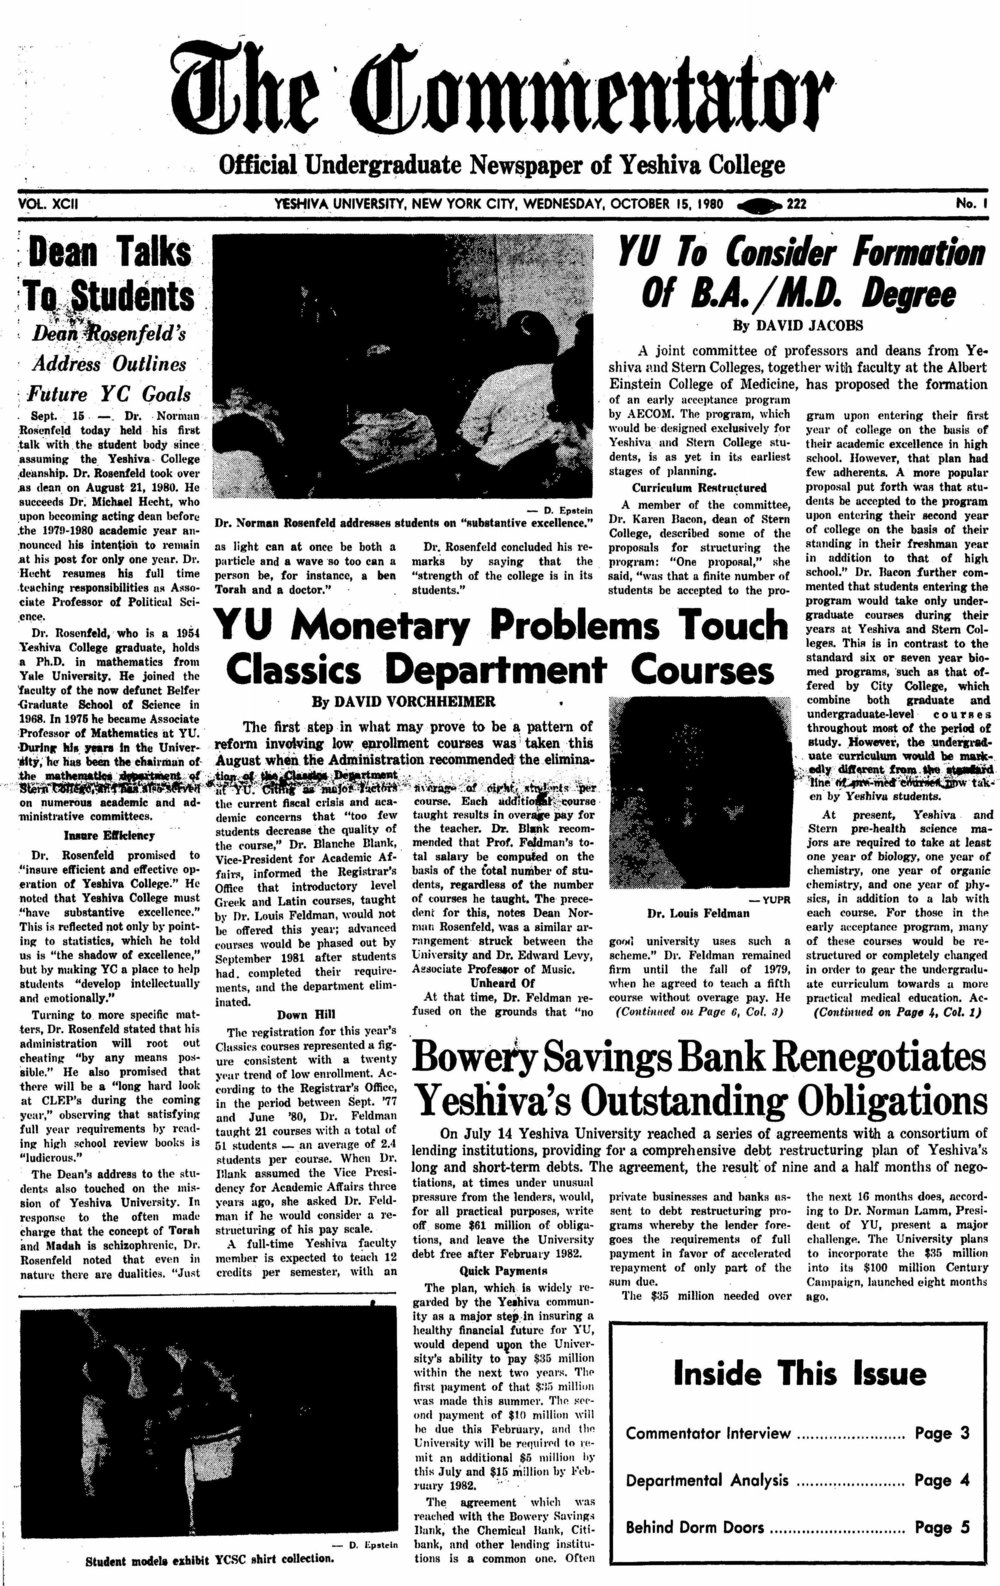 1980.10.15.TC--YU Monetary Problems Touch Classics Department Courses_Page_1.jpg